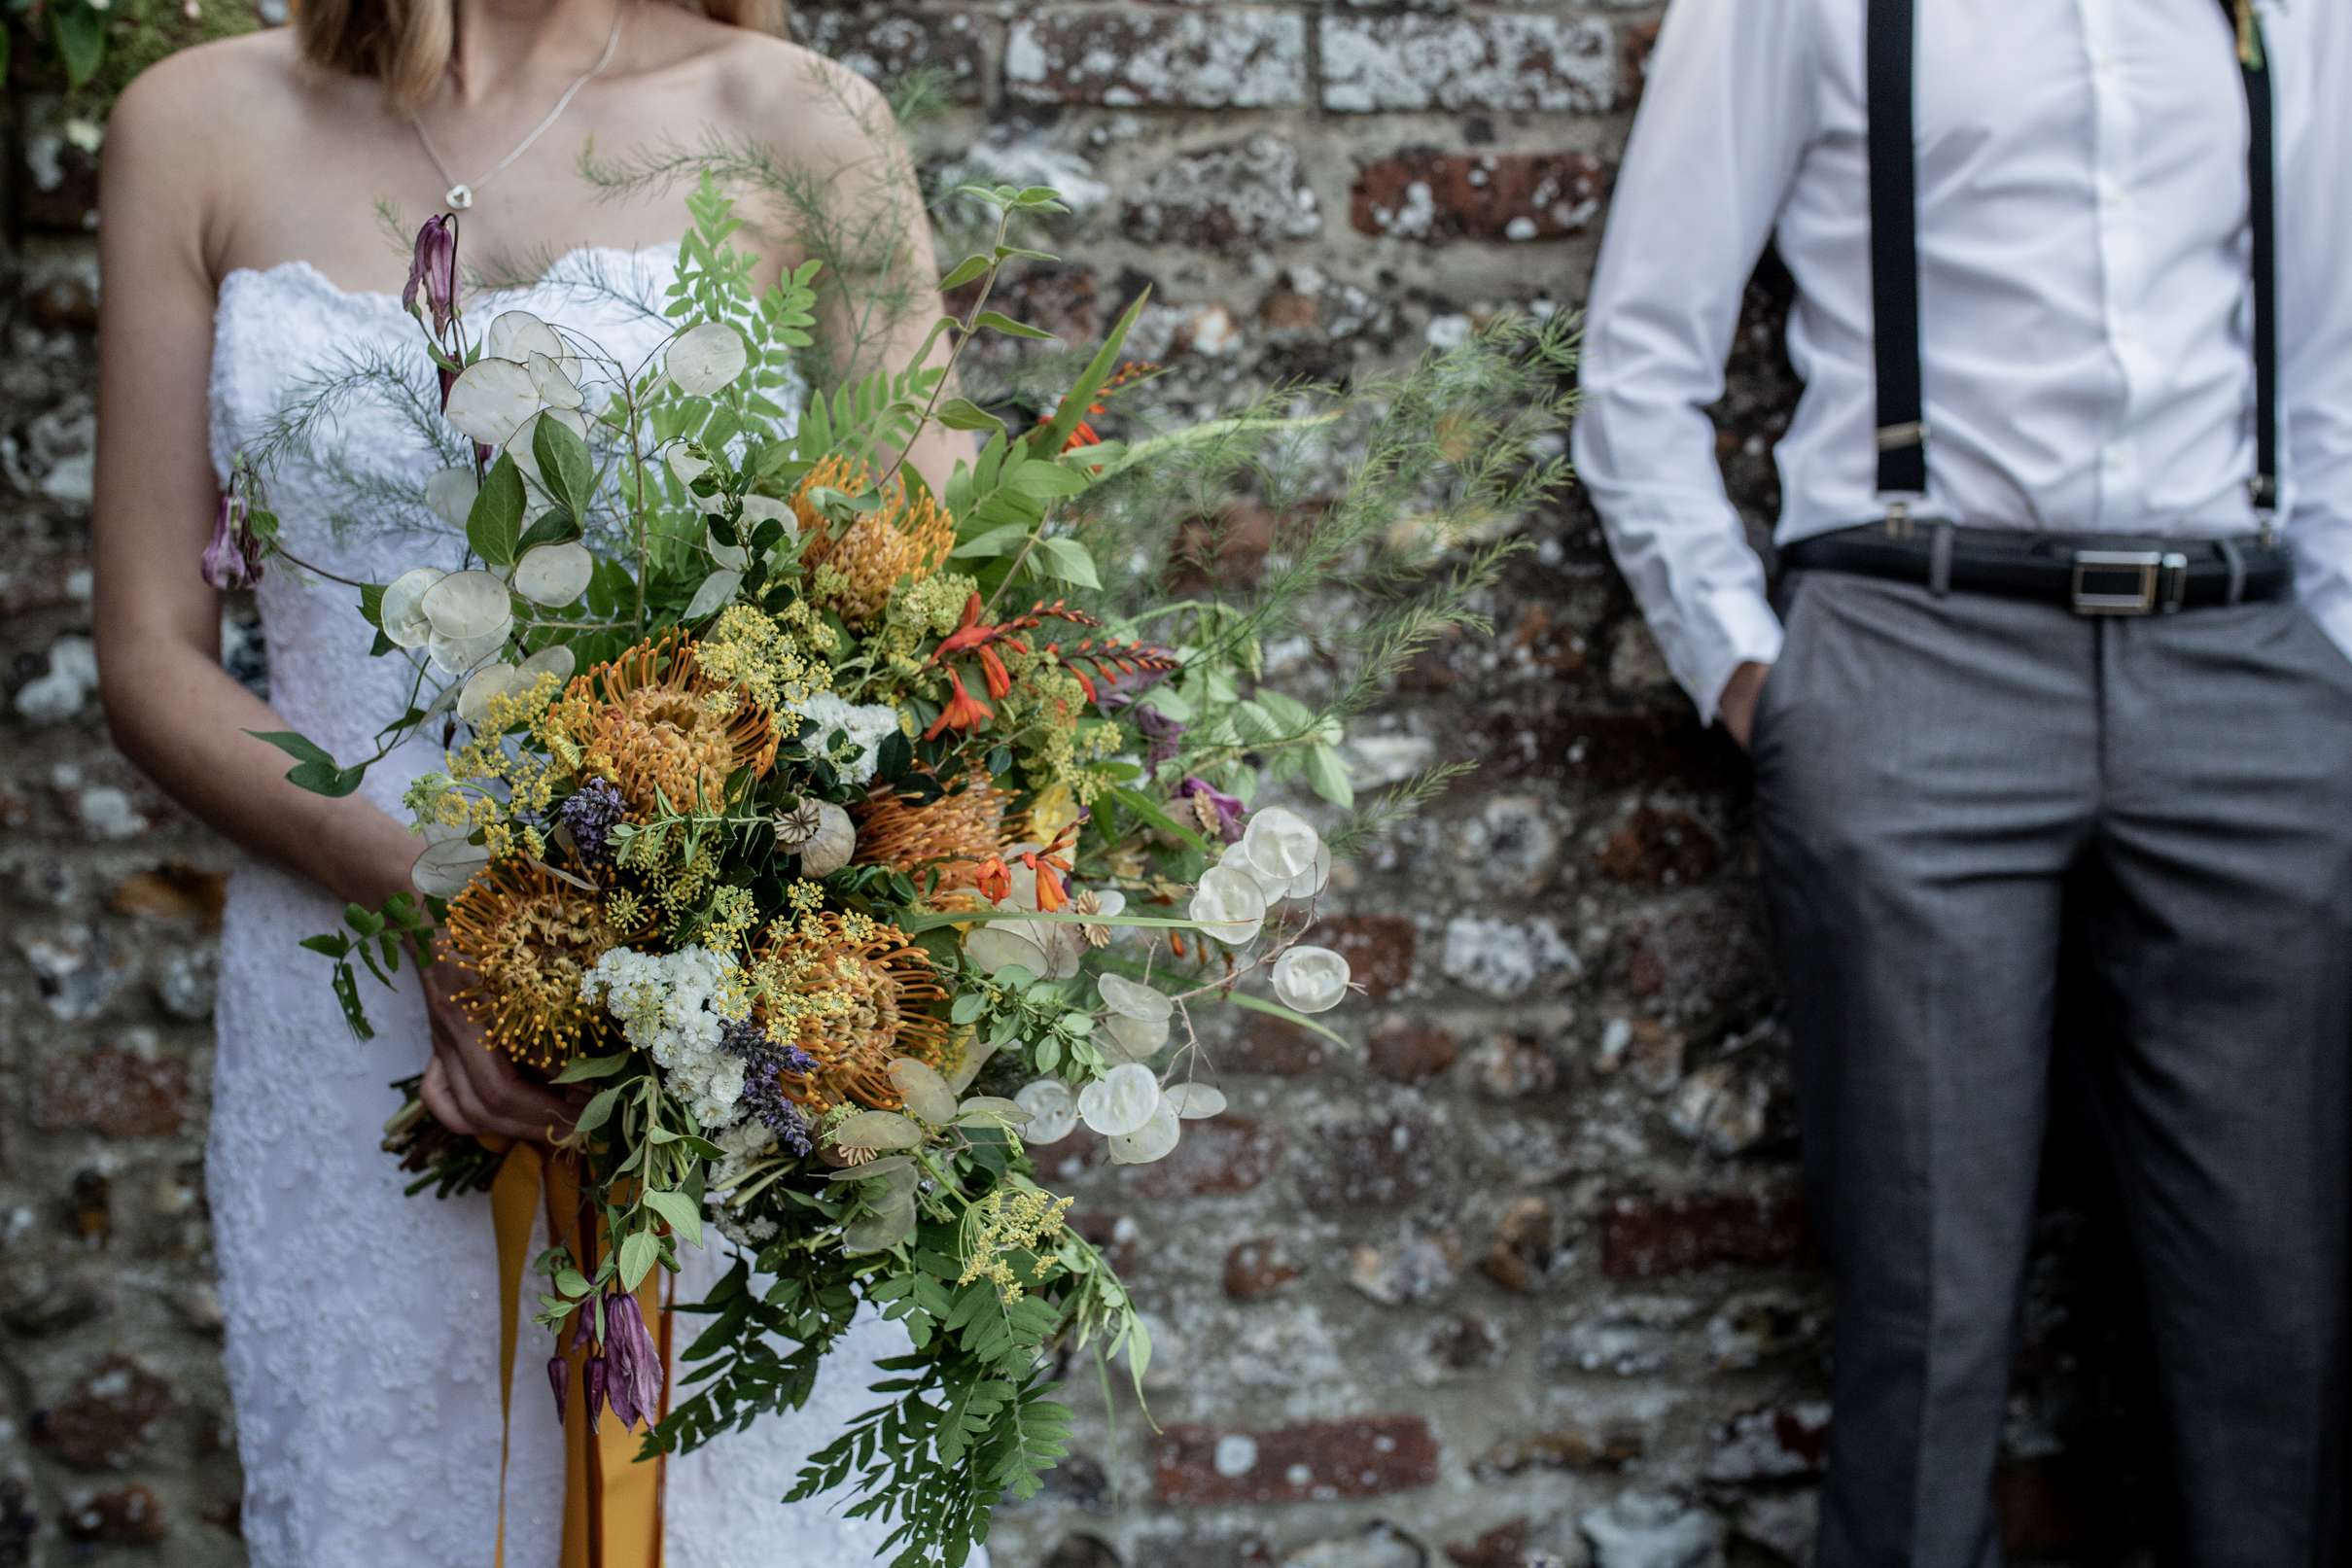 A wedding photo in Chichester a close up of a bride holding a rustic bouquet with the groom in the background, taken at Chiddham barn